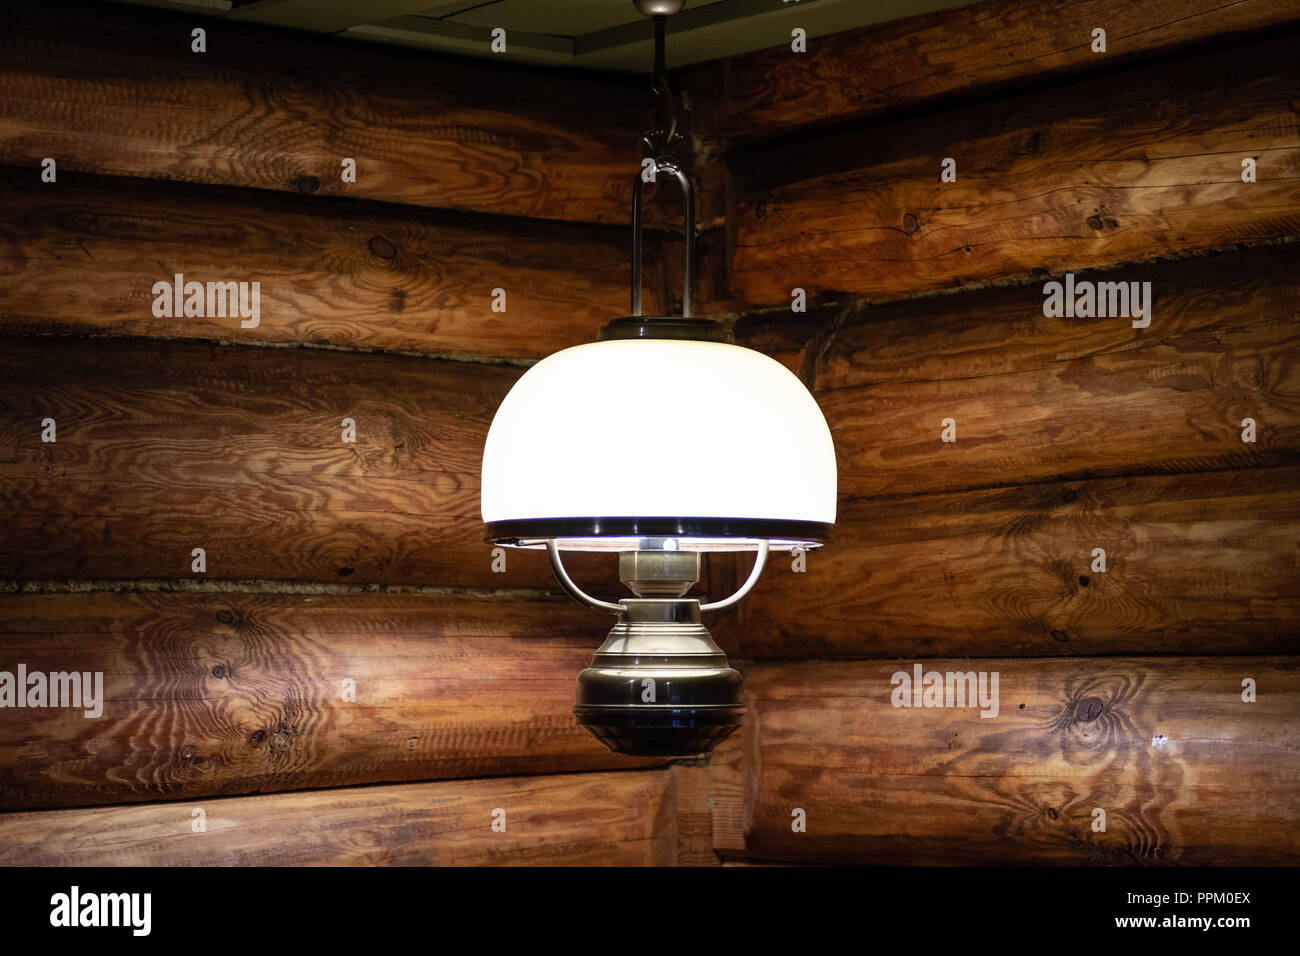 Interior of the log house with an electric lamp. - Stock Image